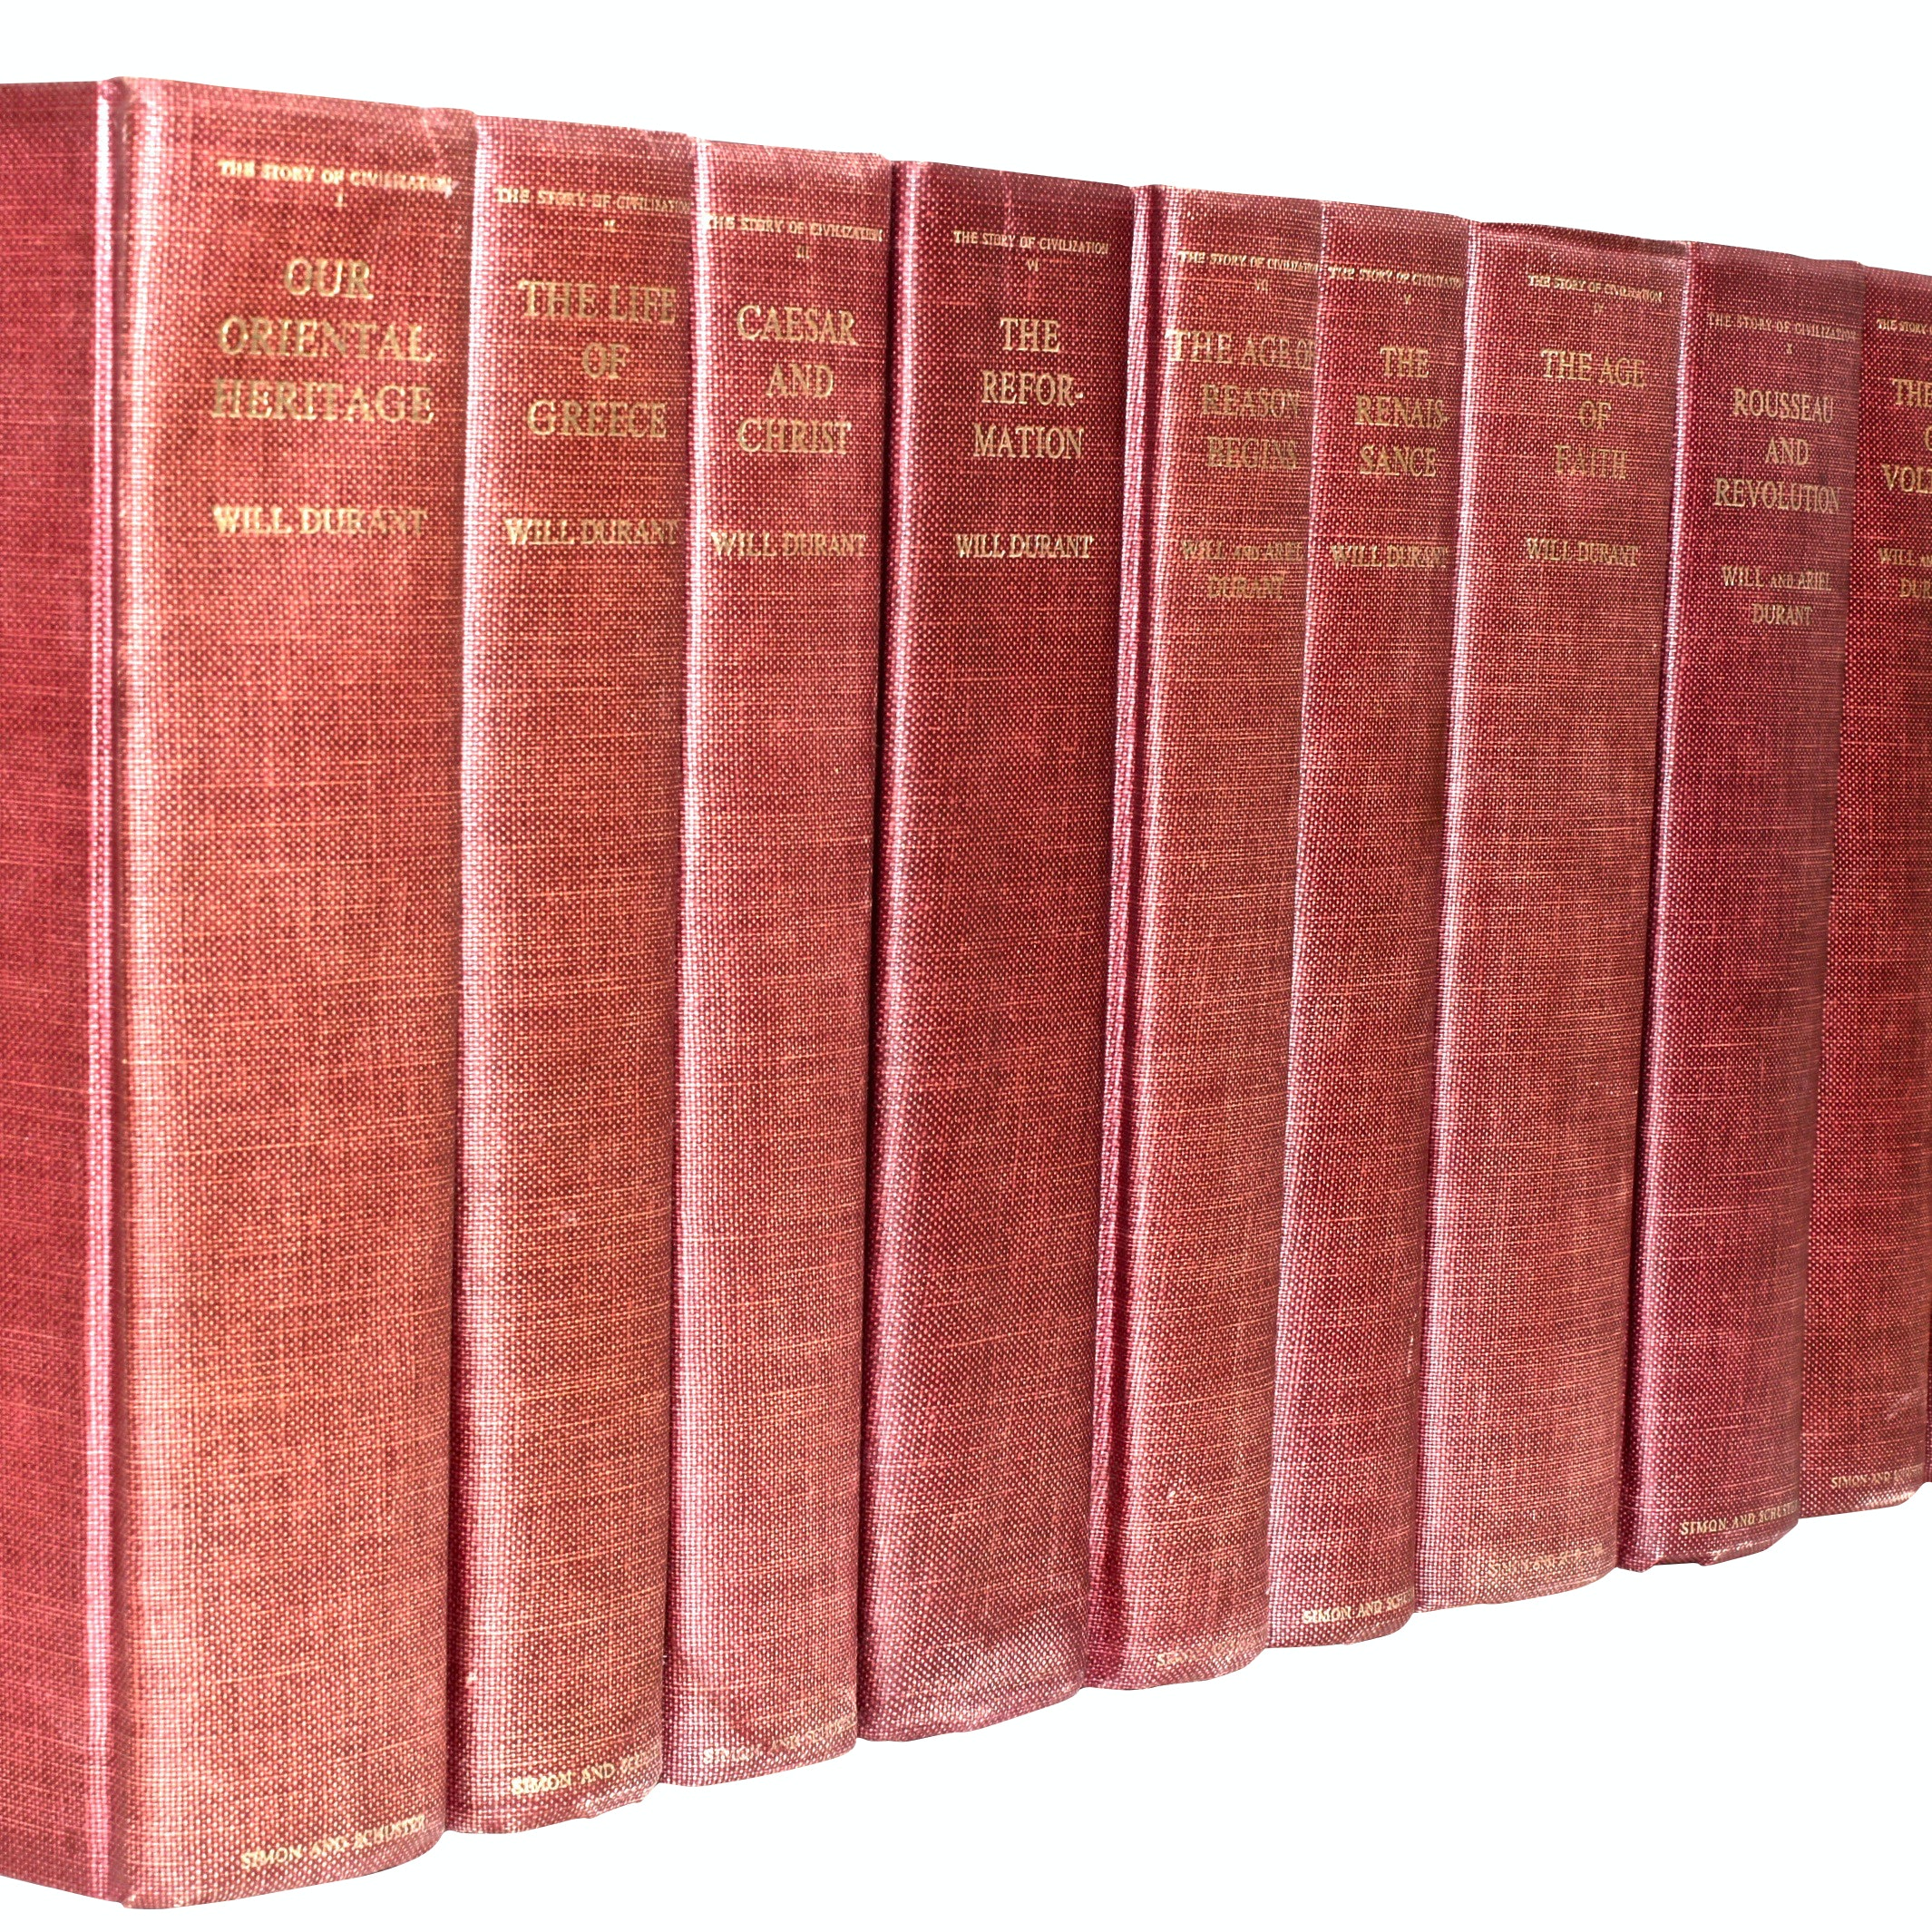 """Vintage """"The Story of Civilization"""" by Will and Ariel Durant, 10 Volumes"""